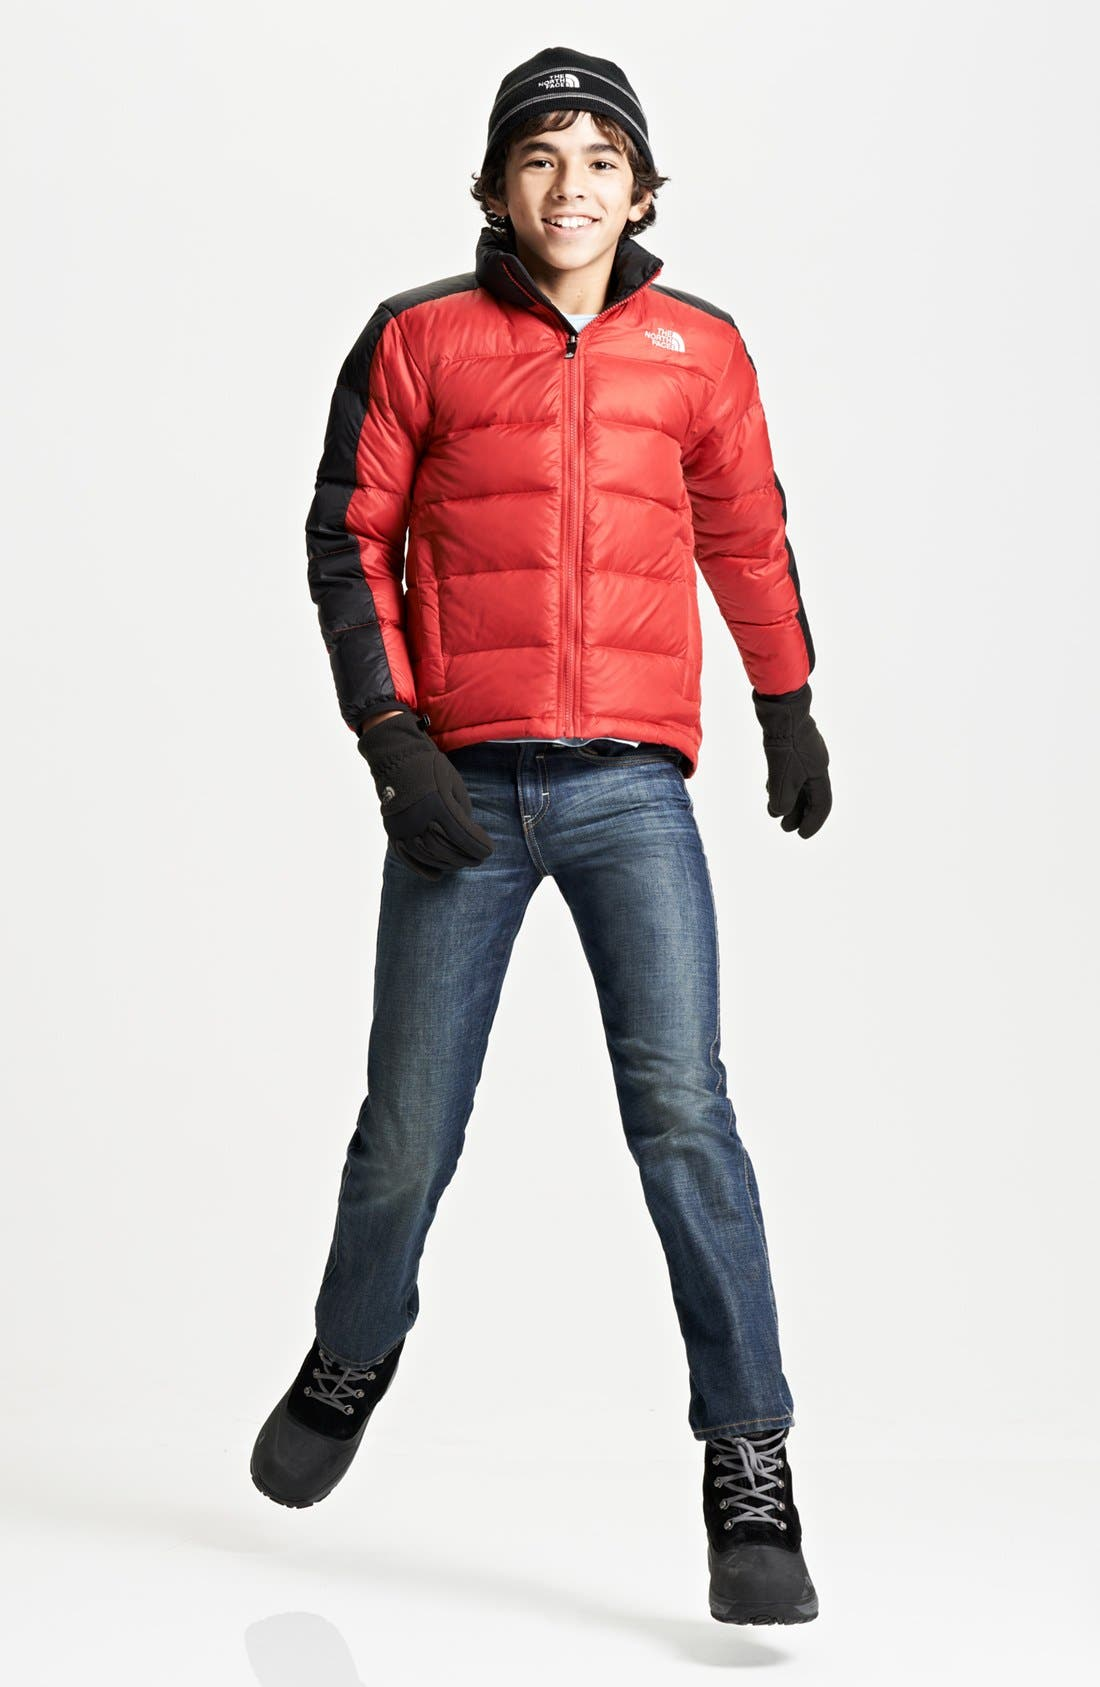 Main Image - The North Face Jacket & Tucker + Tate Jeans (Big Boys)